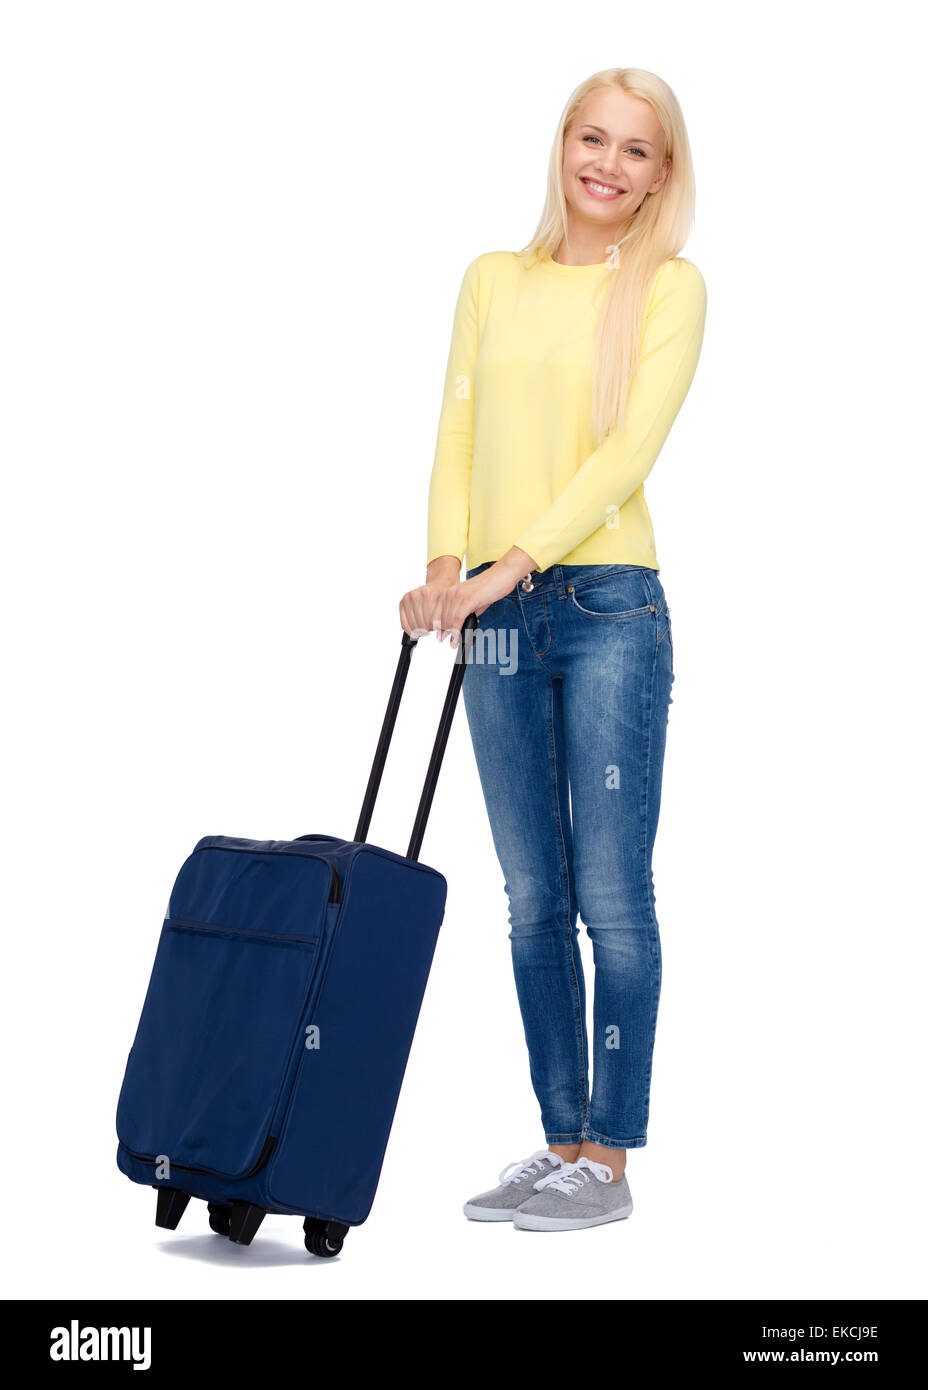 smiling young woman with suitcase - Stock Image